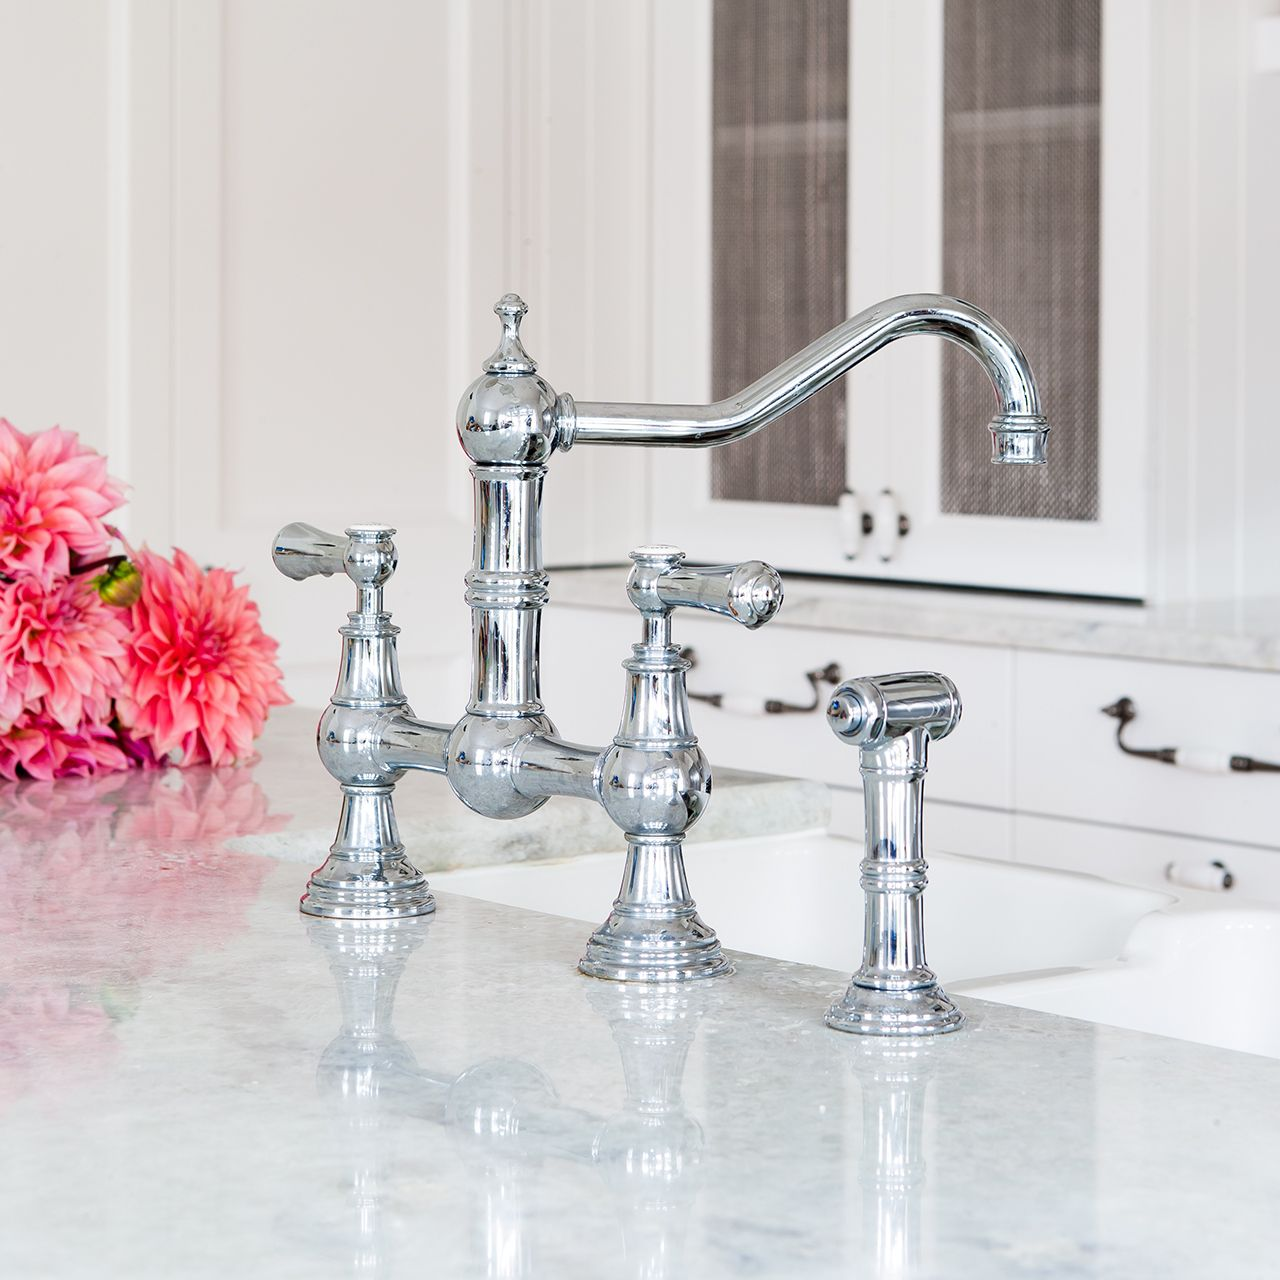 Perrin Amp Rowe Provence 4756 Tap With Rinse Sinks Taps Com